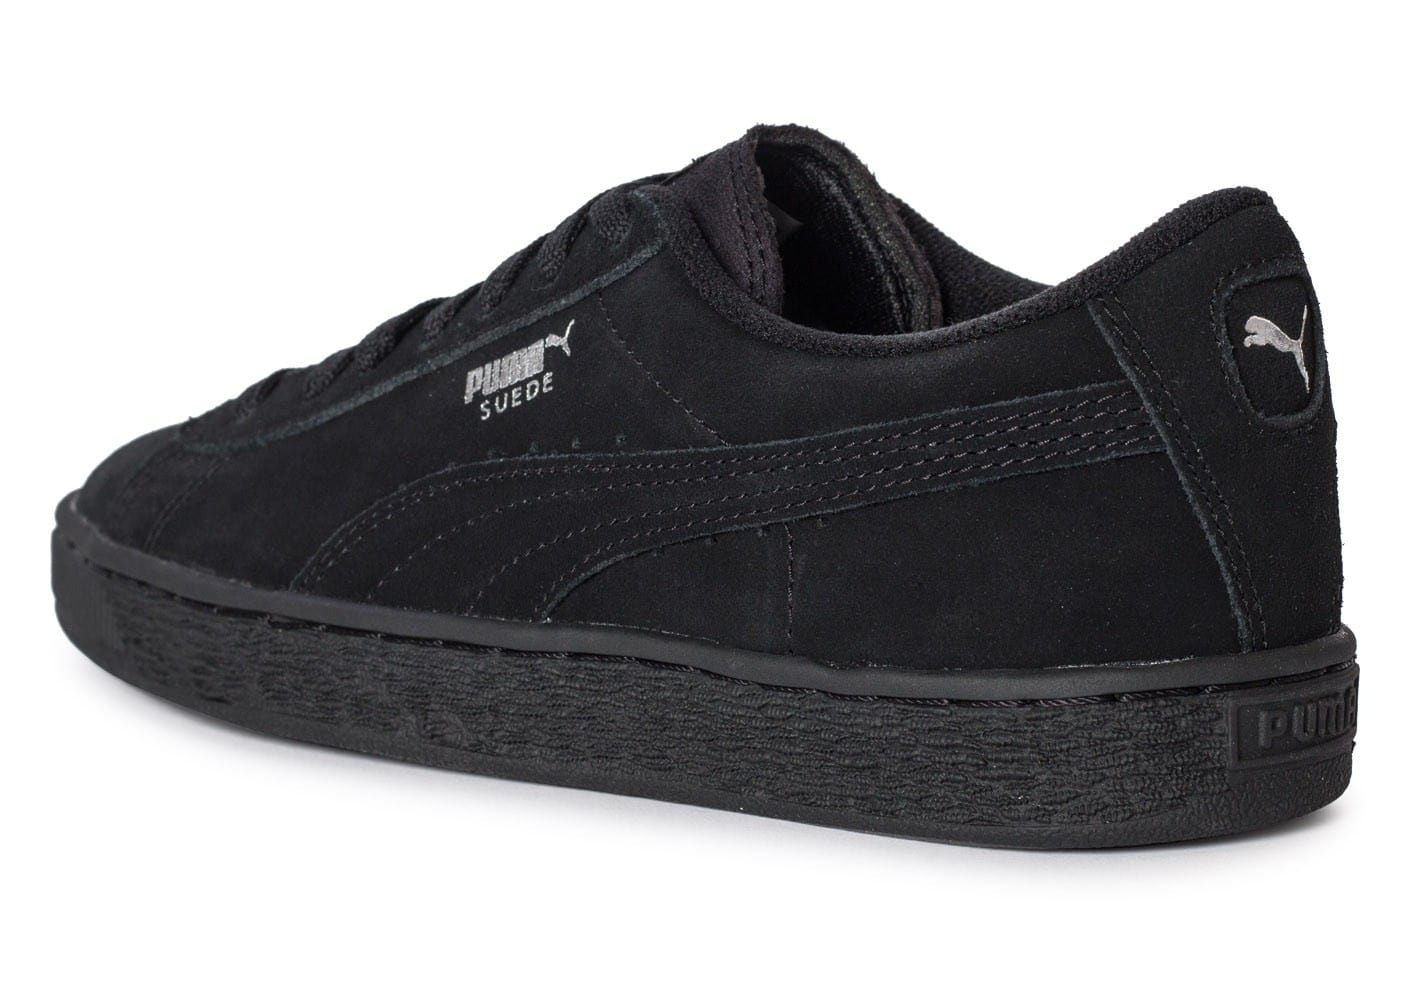 puma suede classic junior noire chaussures black friday chausport. Black Bedroom Furniture Sets. Home Design Ideas